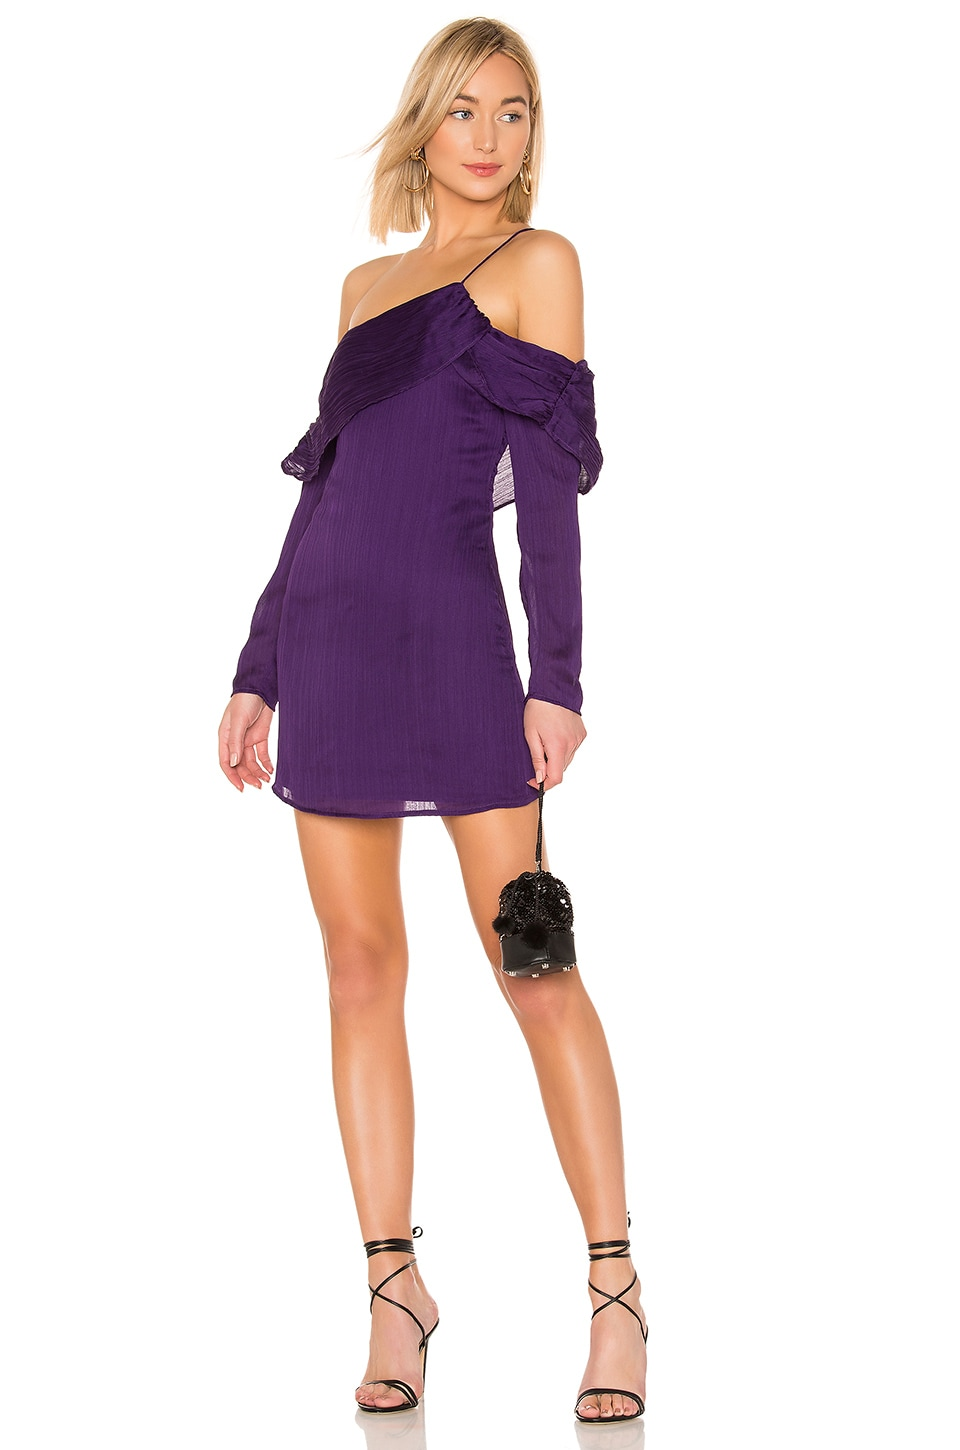 House of Harlow 1960 ROBE MANCHES LONGUES LILLYANN